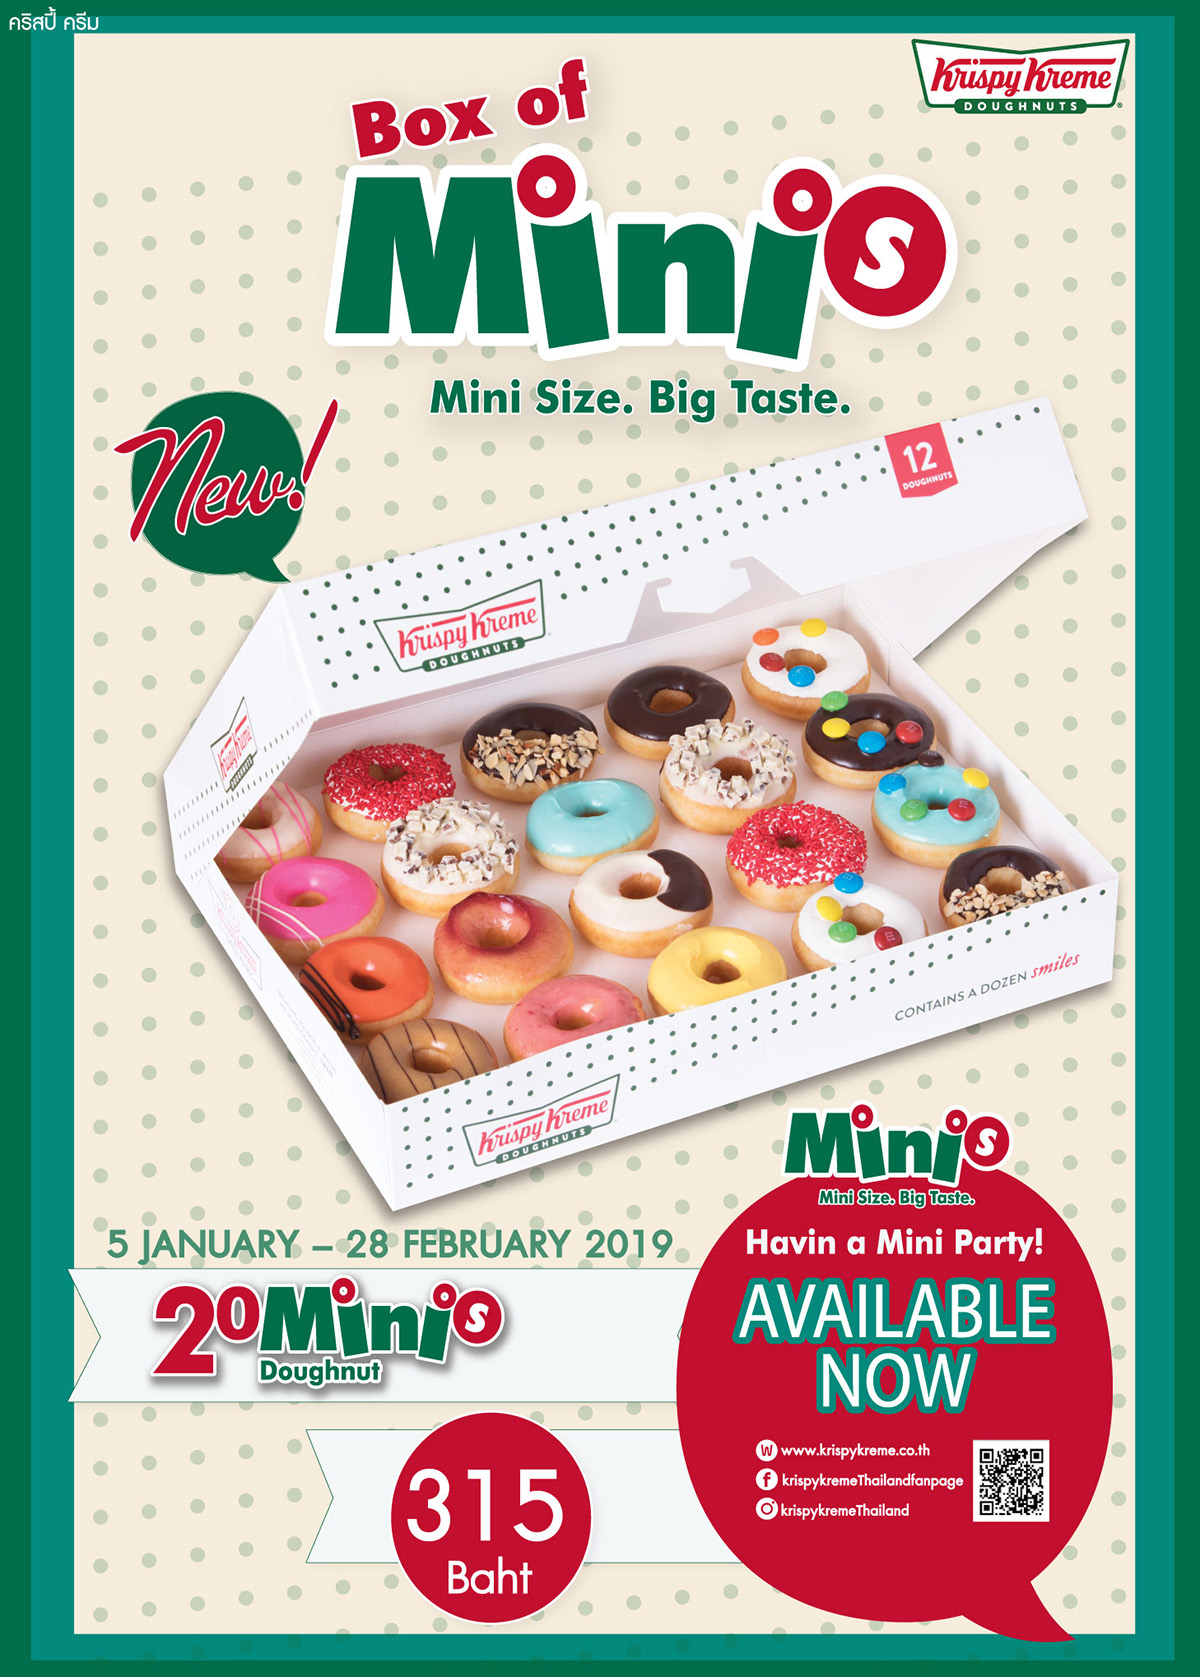 krispykreme_website_01.23.2019_mini_full